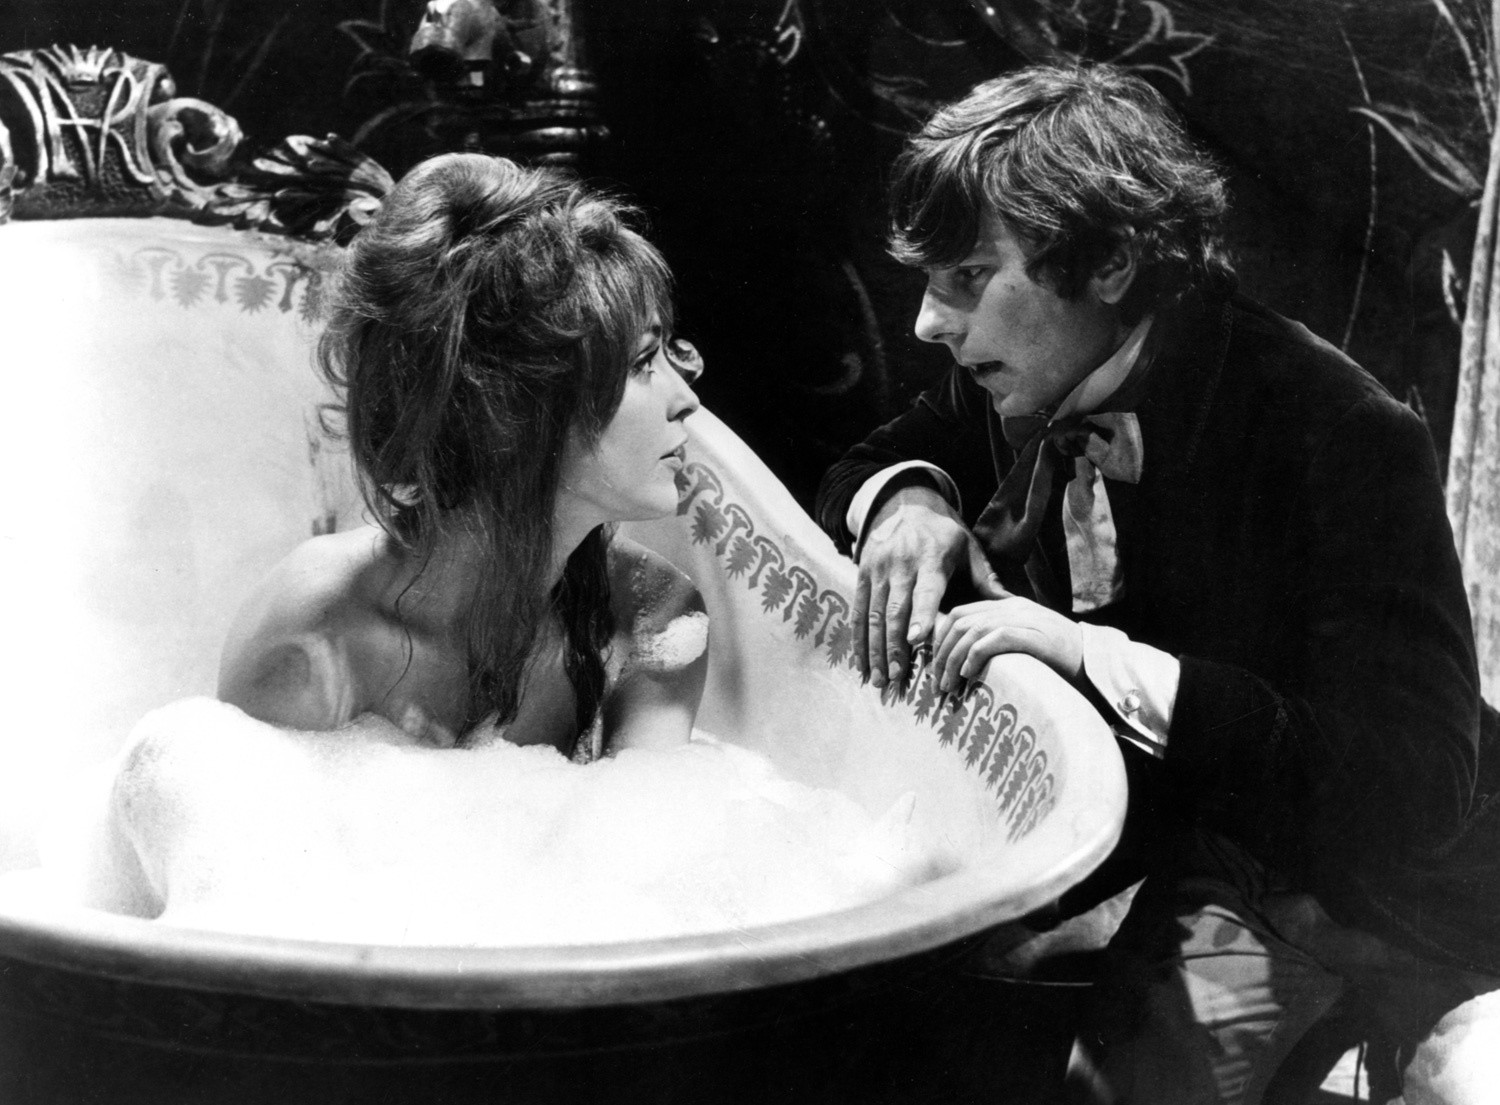 The Fearless Vampire Killers, or: Pardon Me, but Your Teeth Are in My Neck. 1967. Great Britain. Directed by Roman Polanski